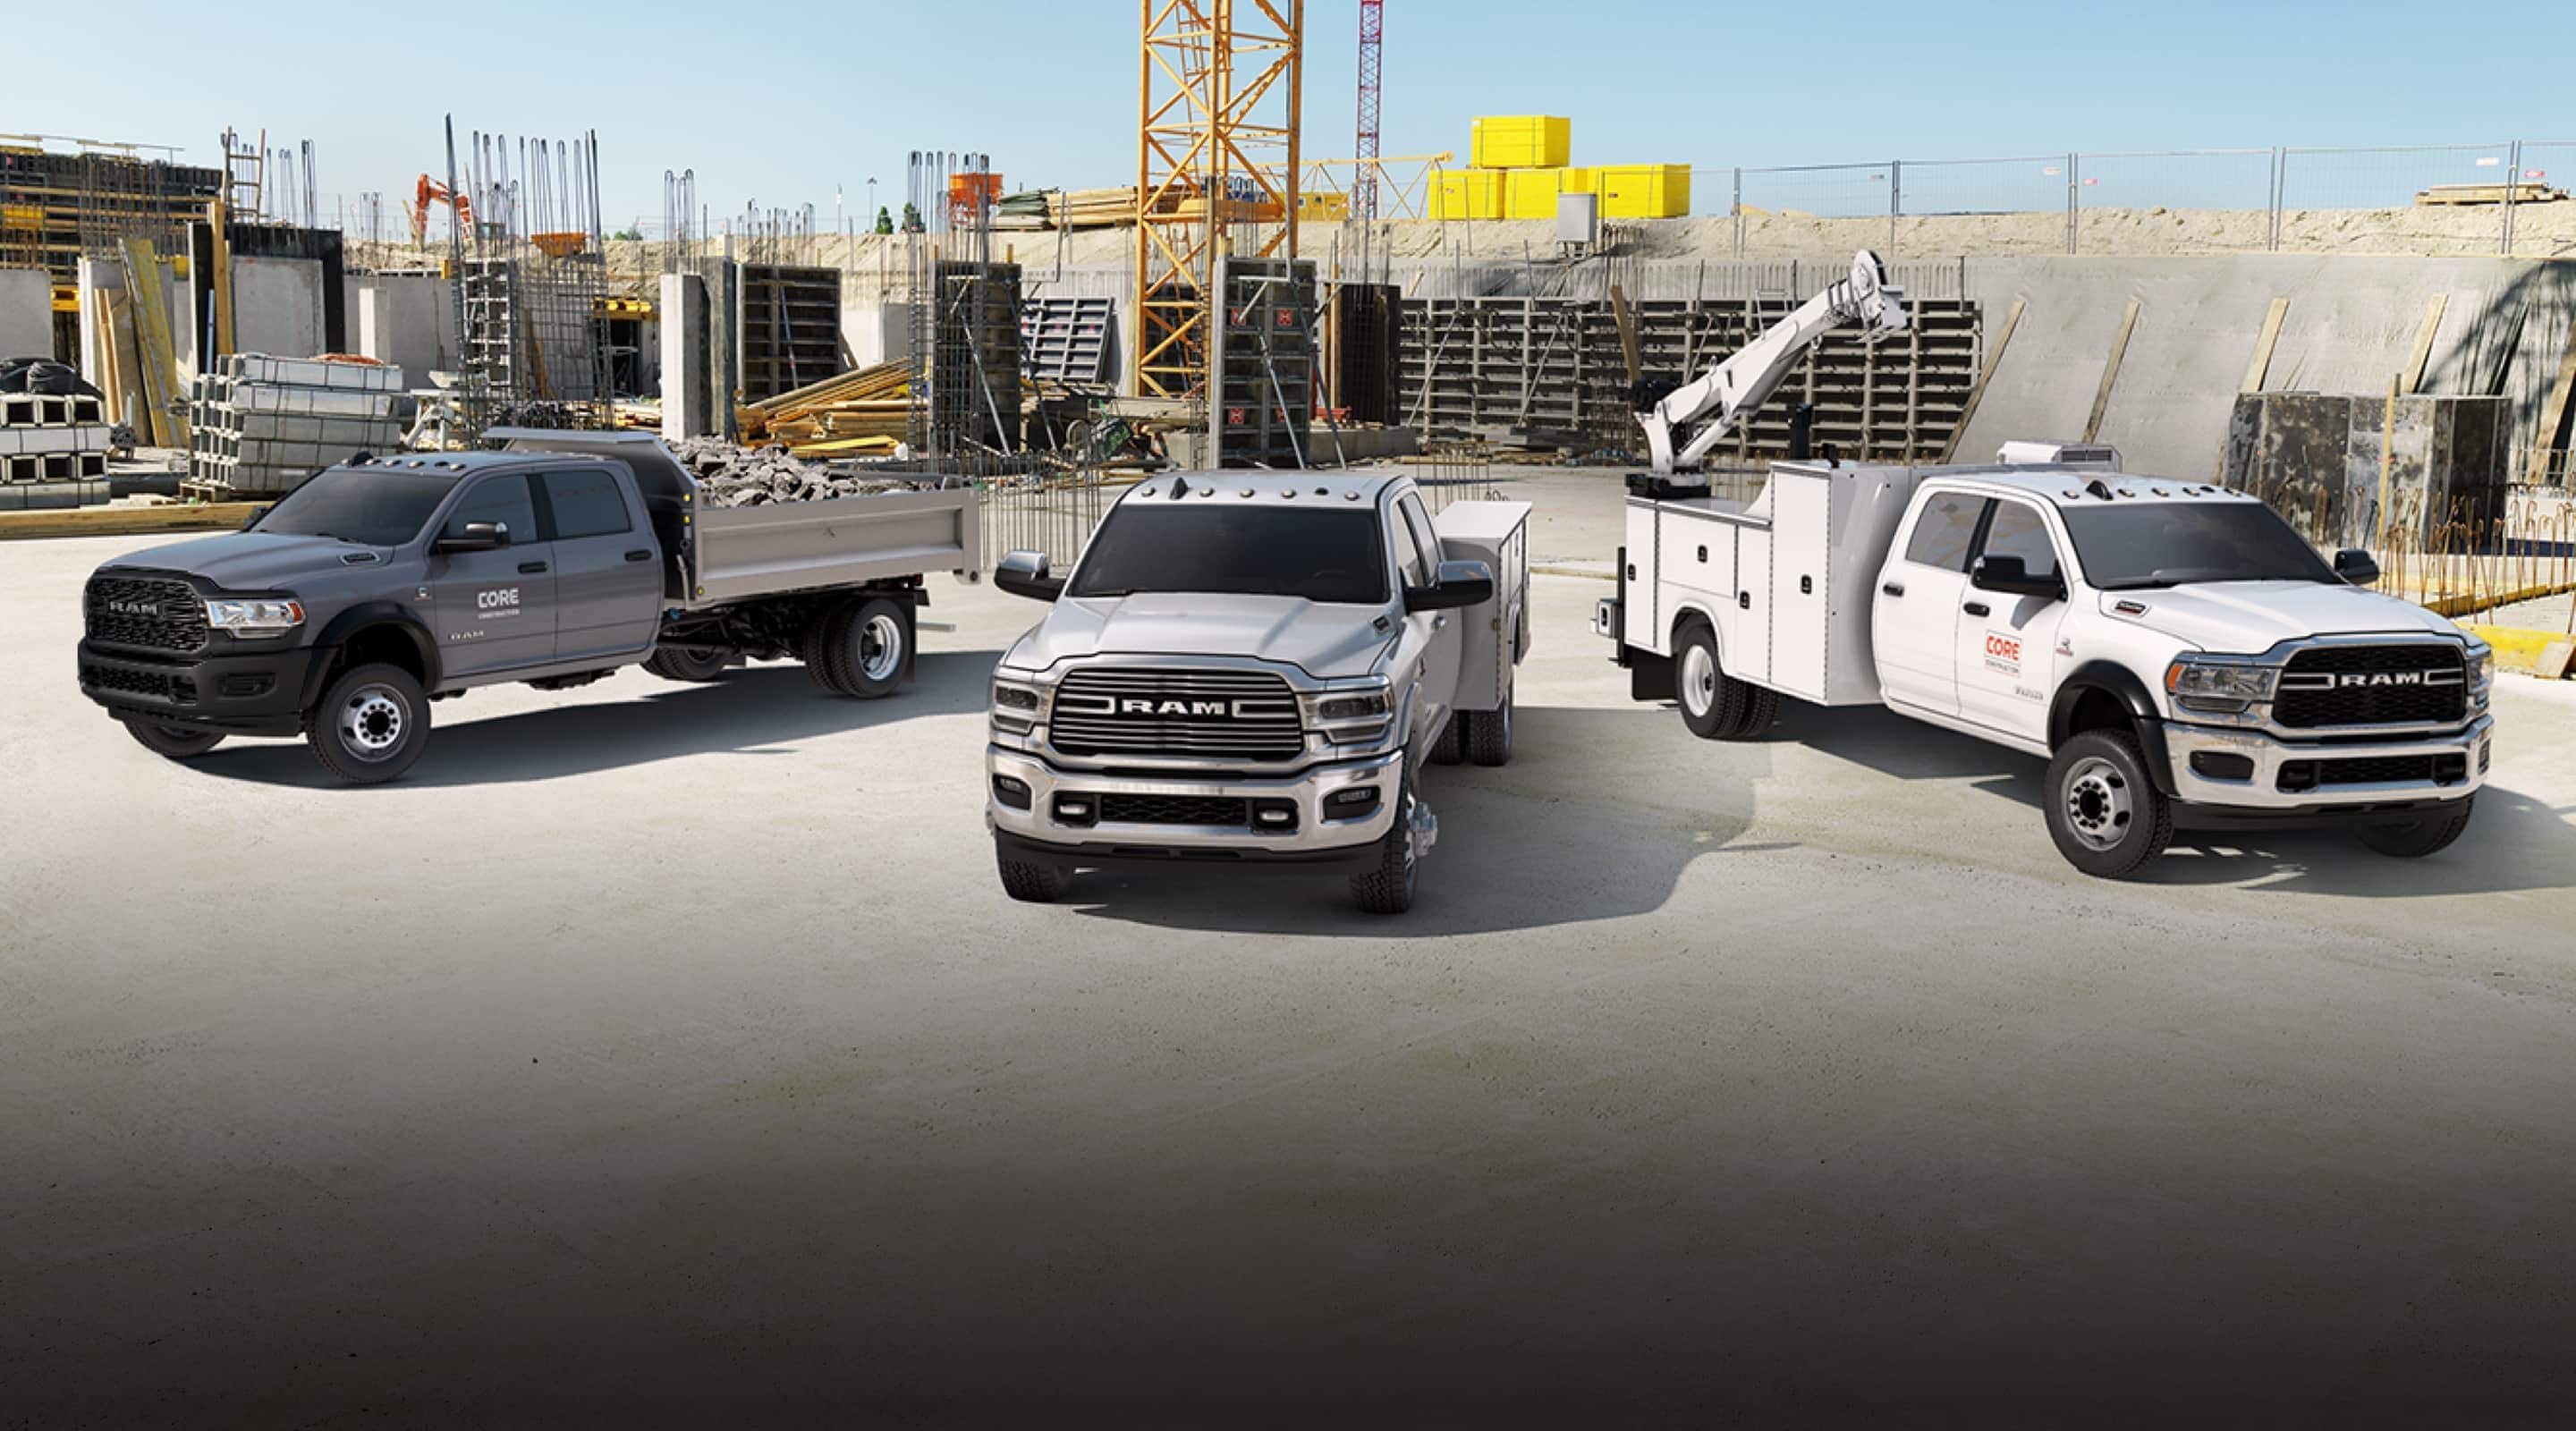 Three 2020 Ram Chassis Cab vehicles parked in a large construction site.